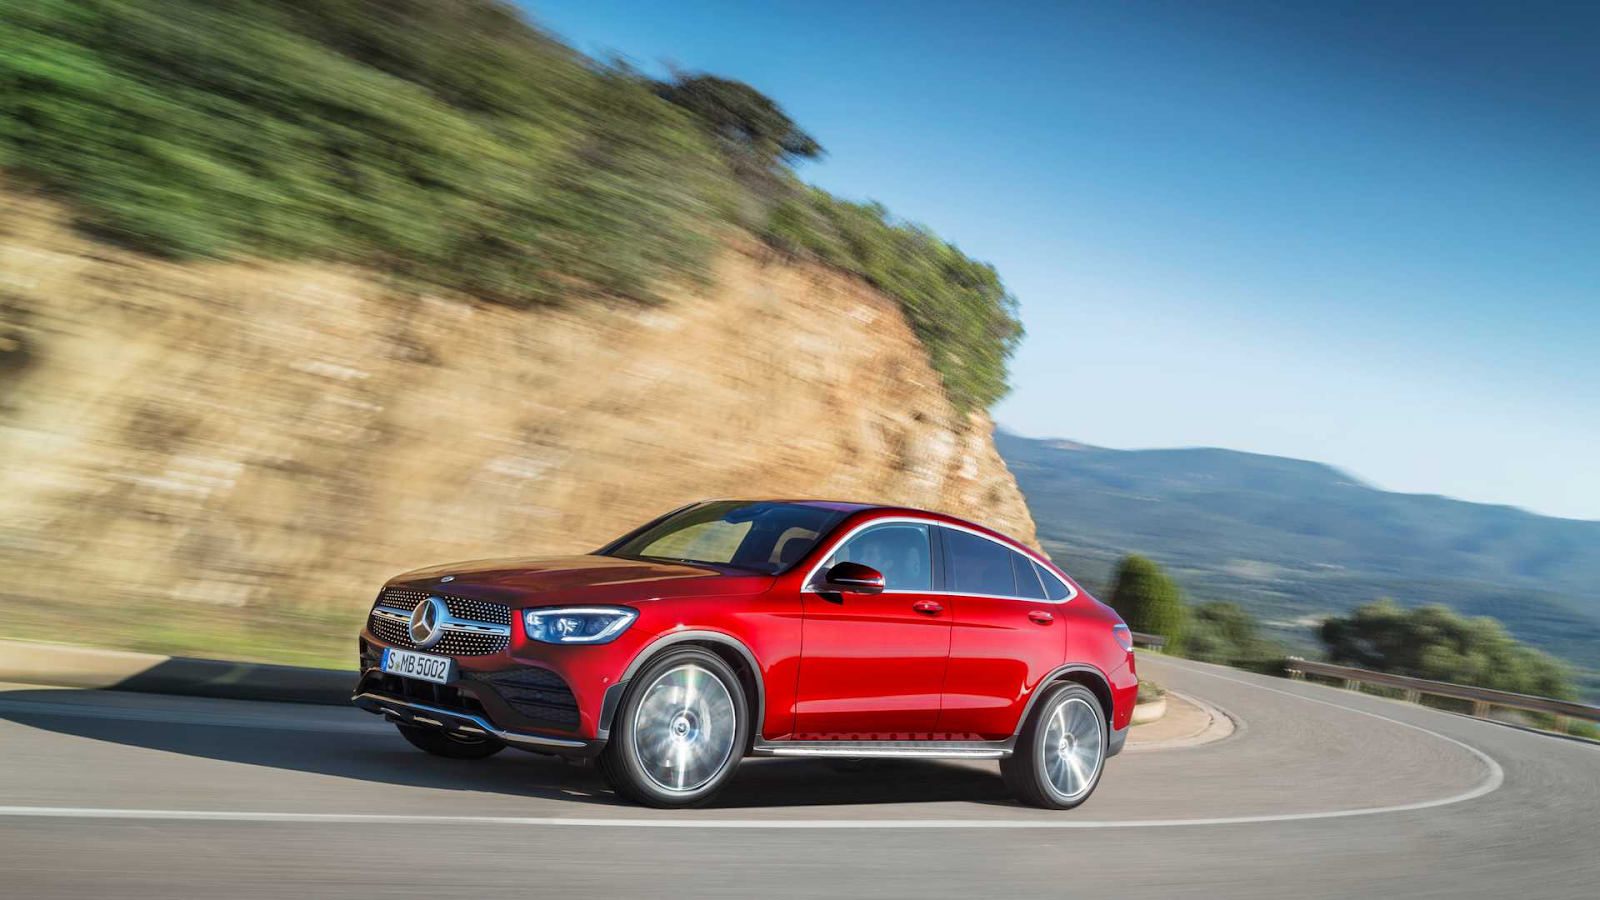 glc coupe mercedes glc coupe mercedes benz glc coupe glc coupe mercedes mercedes-benz glc coupe